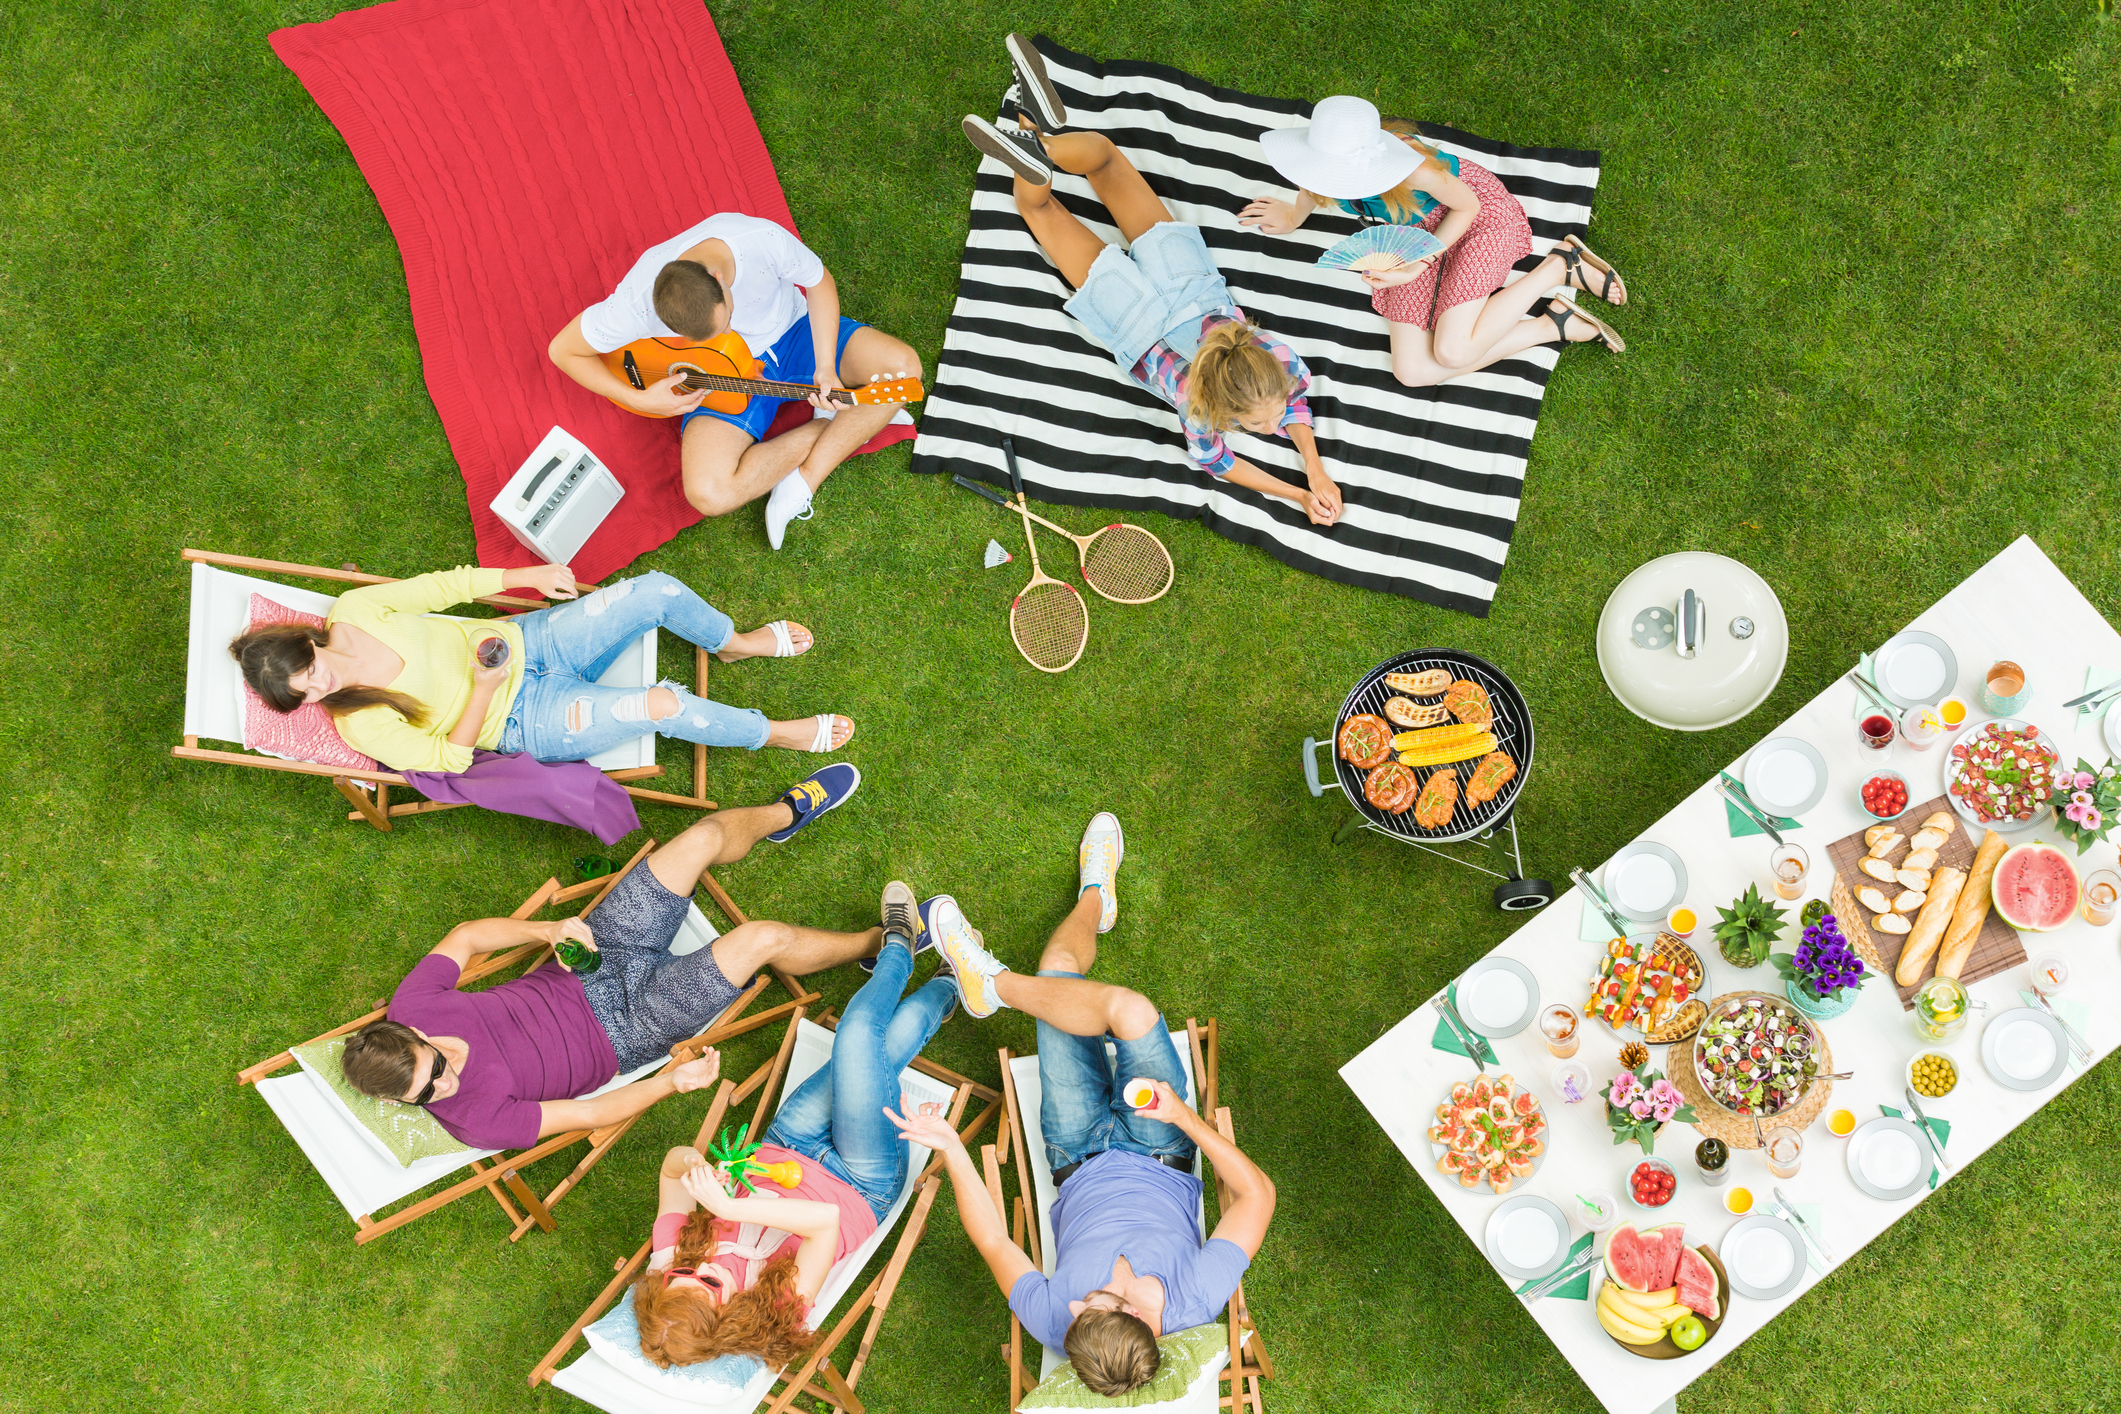 Top view of group of young friends having summer barbecue party in the backyard with grill and table full of delicious food